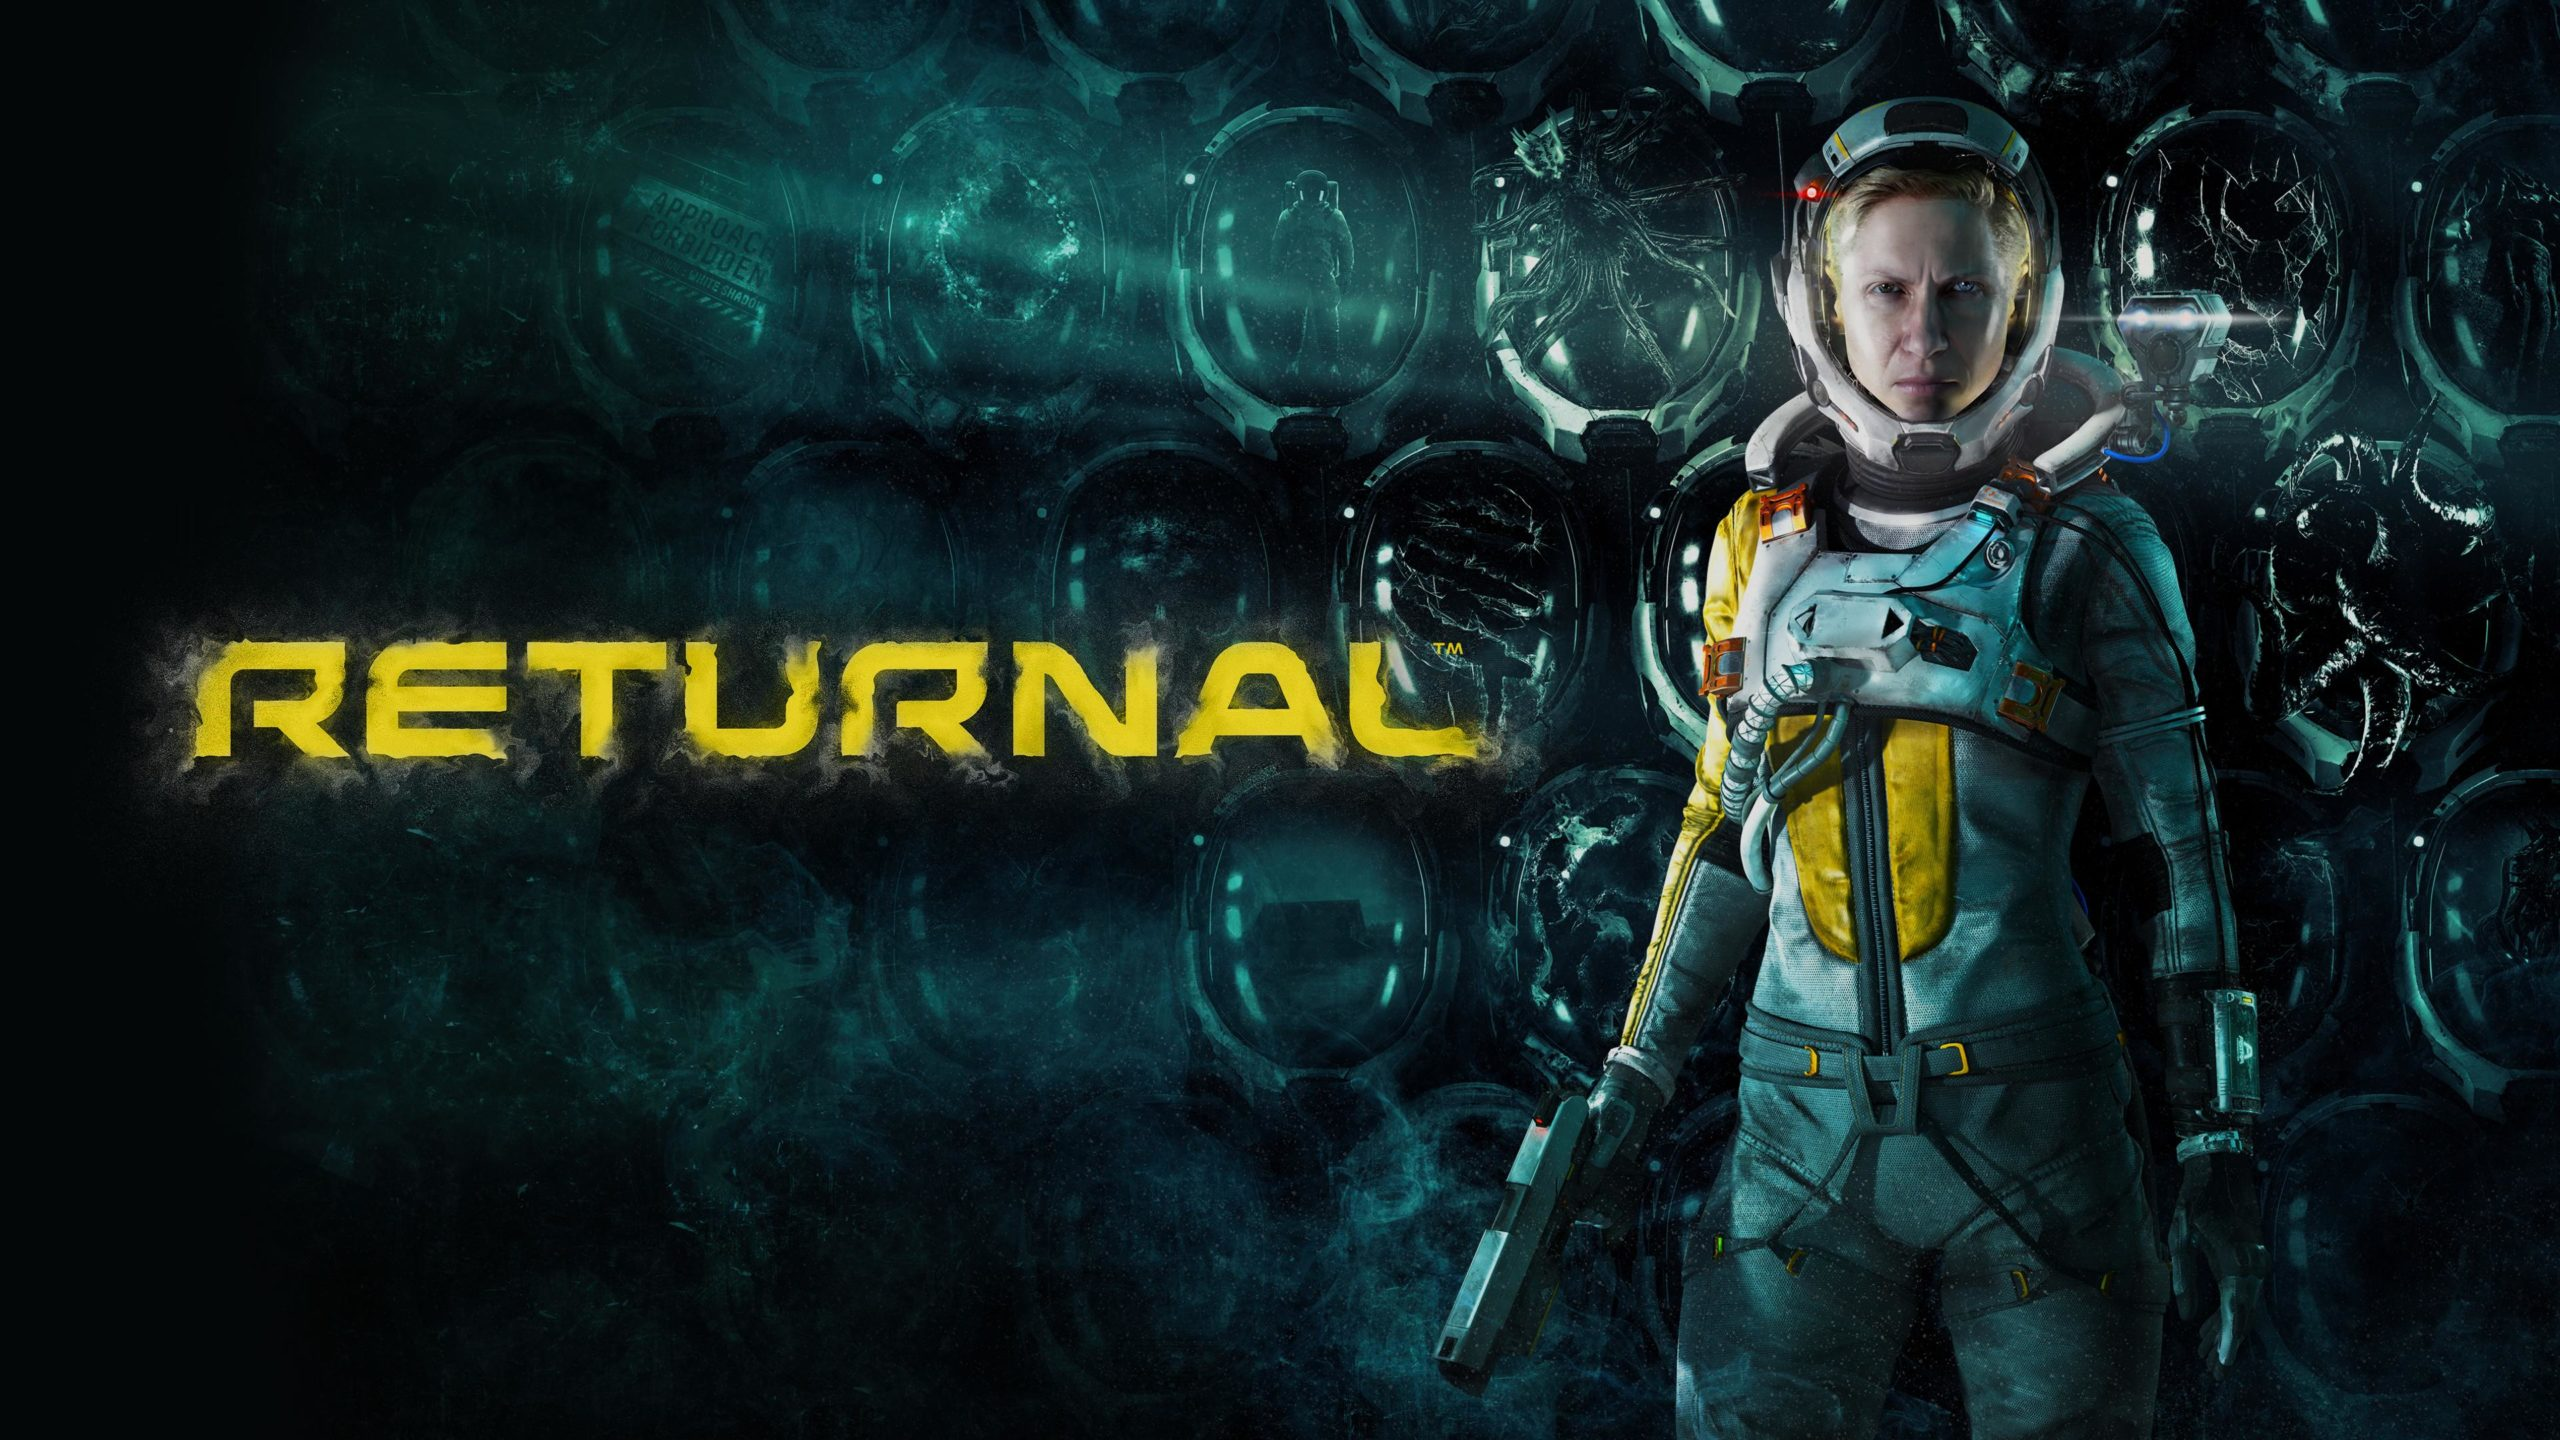 Returnal — Can I Play That Accessibility Review